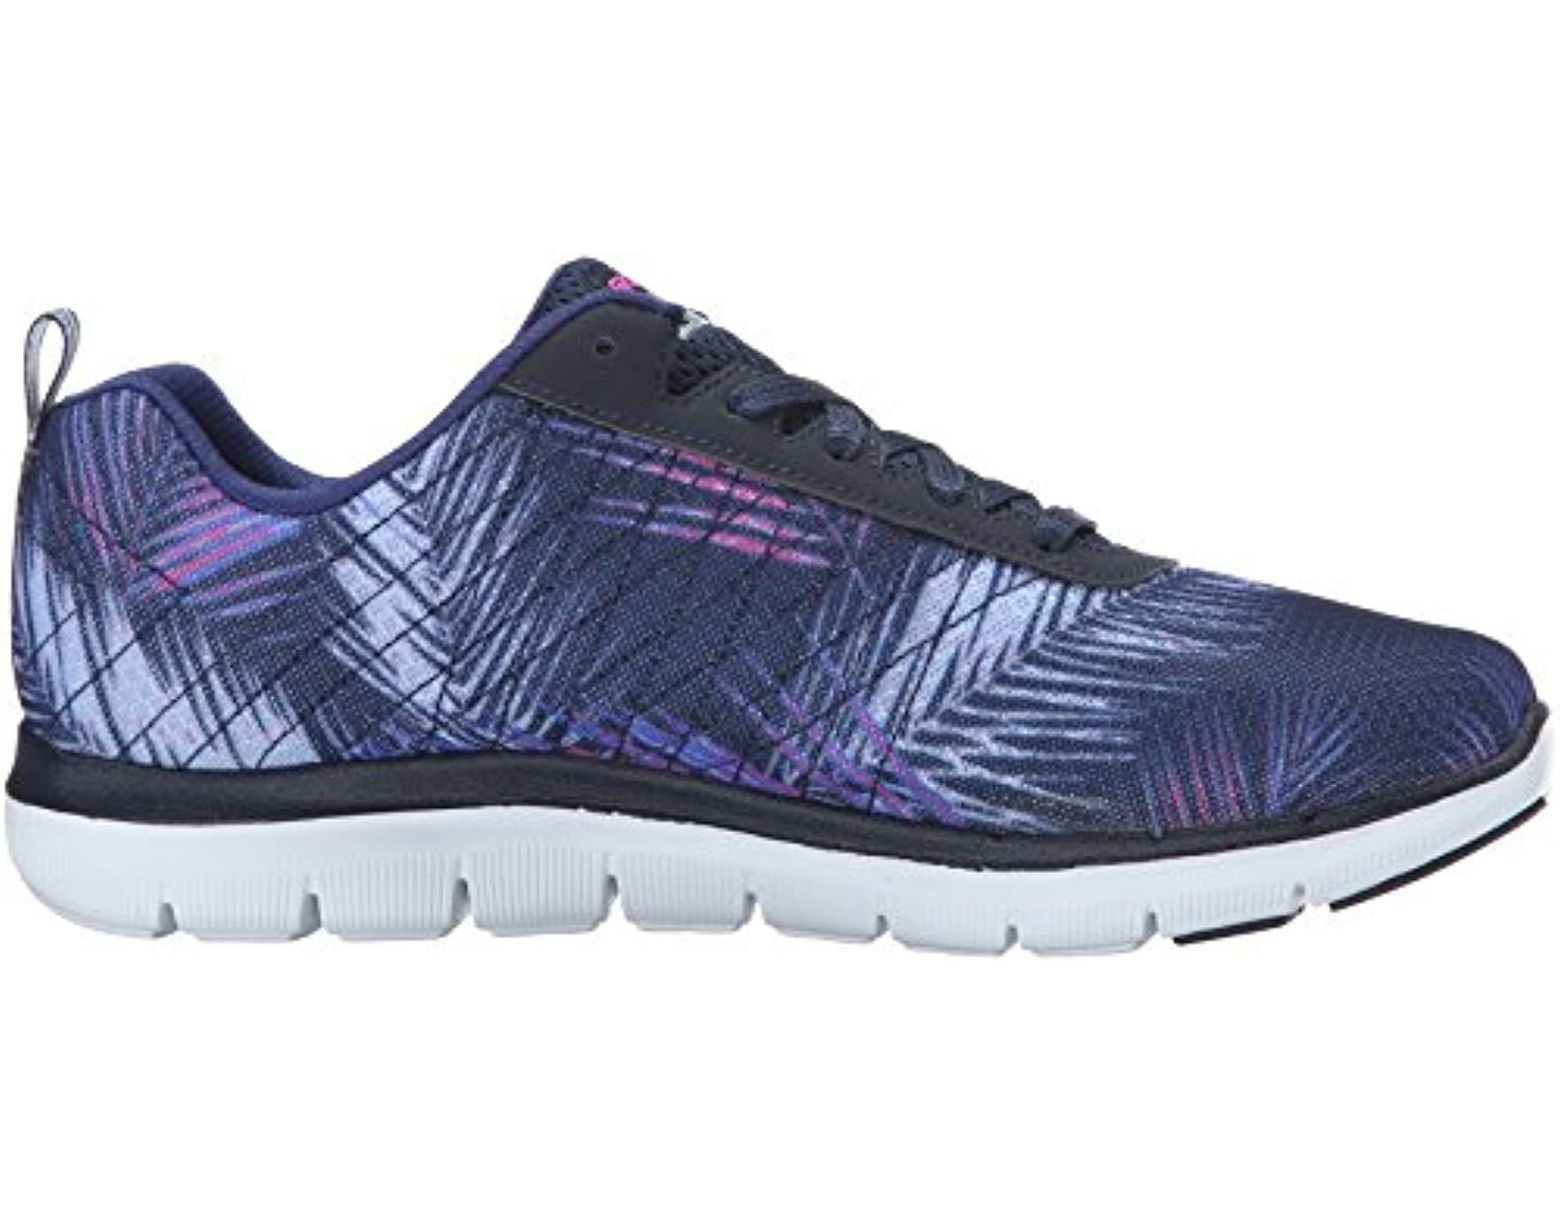 0759f199db4c2 Skechers Flex Appeal 2.0 Tropical Bree Multisport Outdoor Shoes in Blue -  Save 2% - Lyst